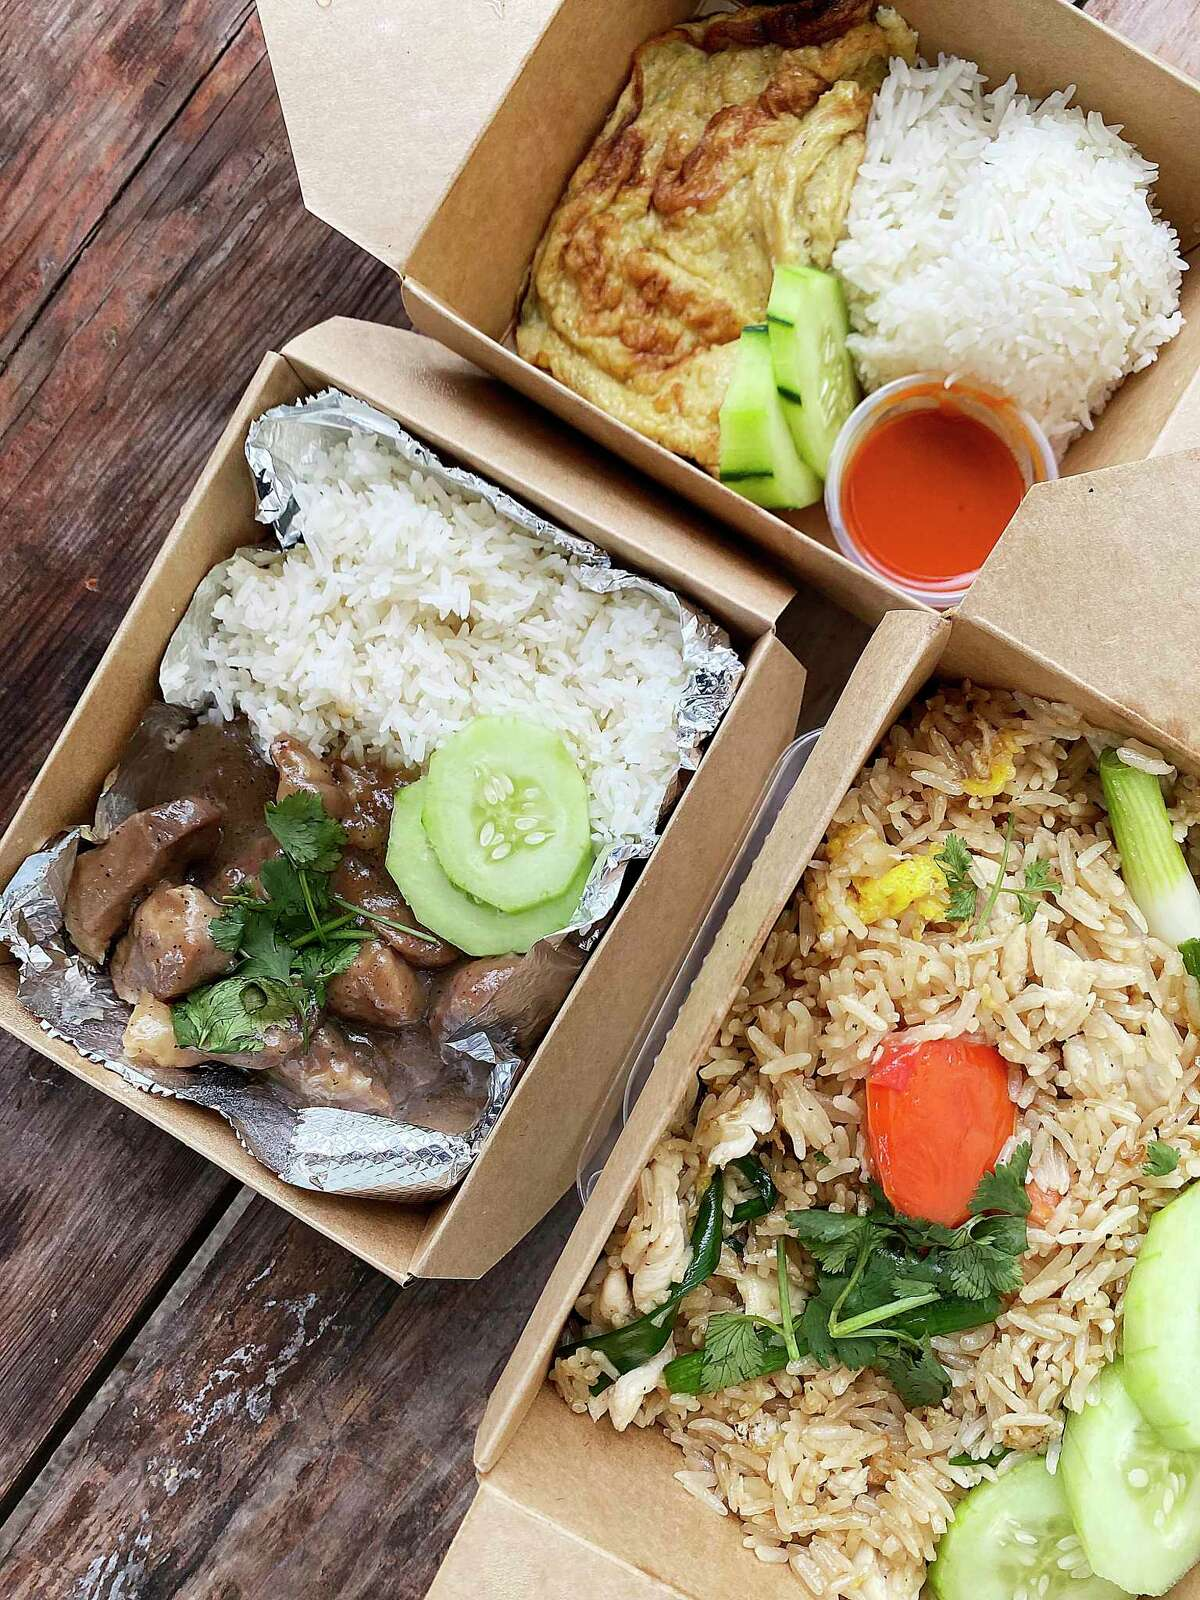 The menu includes moo wan sweet pork, left, a khai jiao Thai omelet and khao pad fried rice with chicken at Aroy Ver, a Thai food trailer parked on Broadway north of the Pearl at Broadway News.